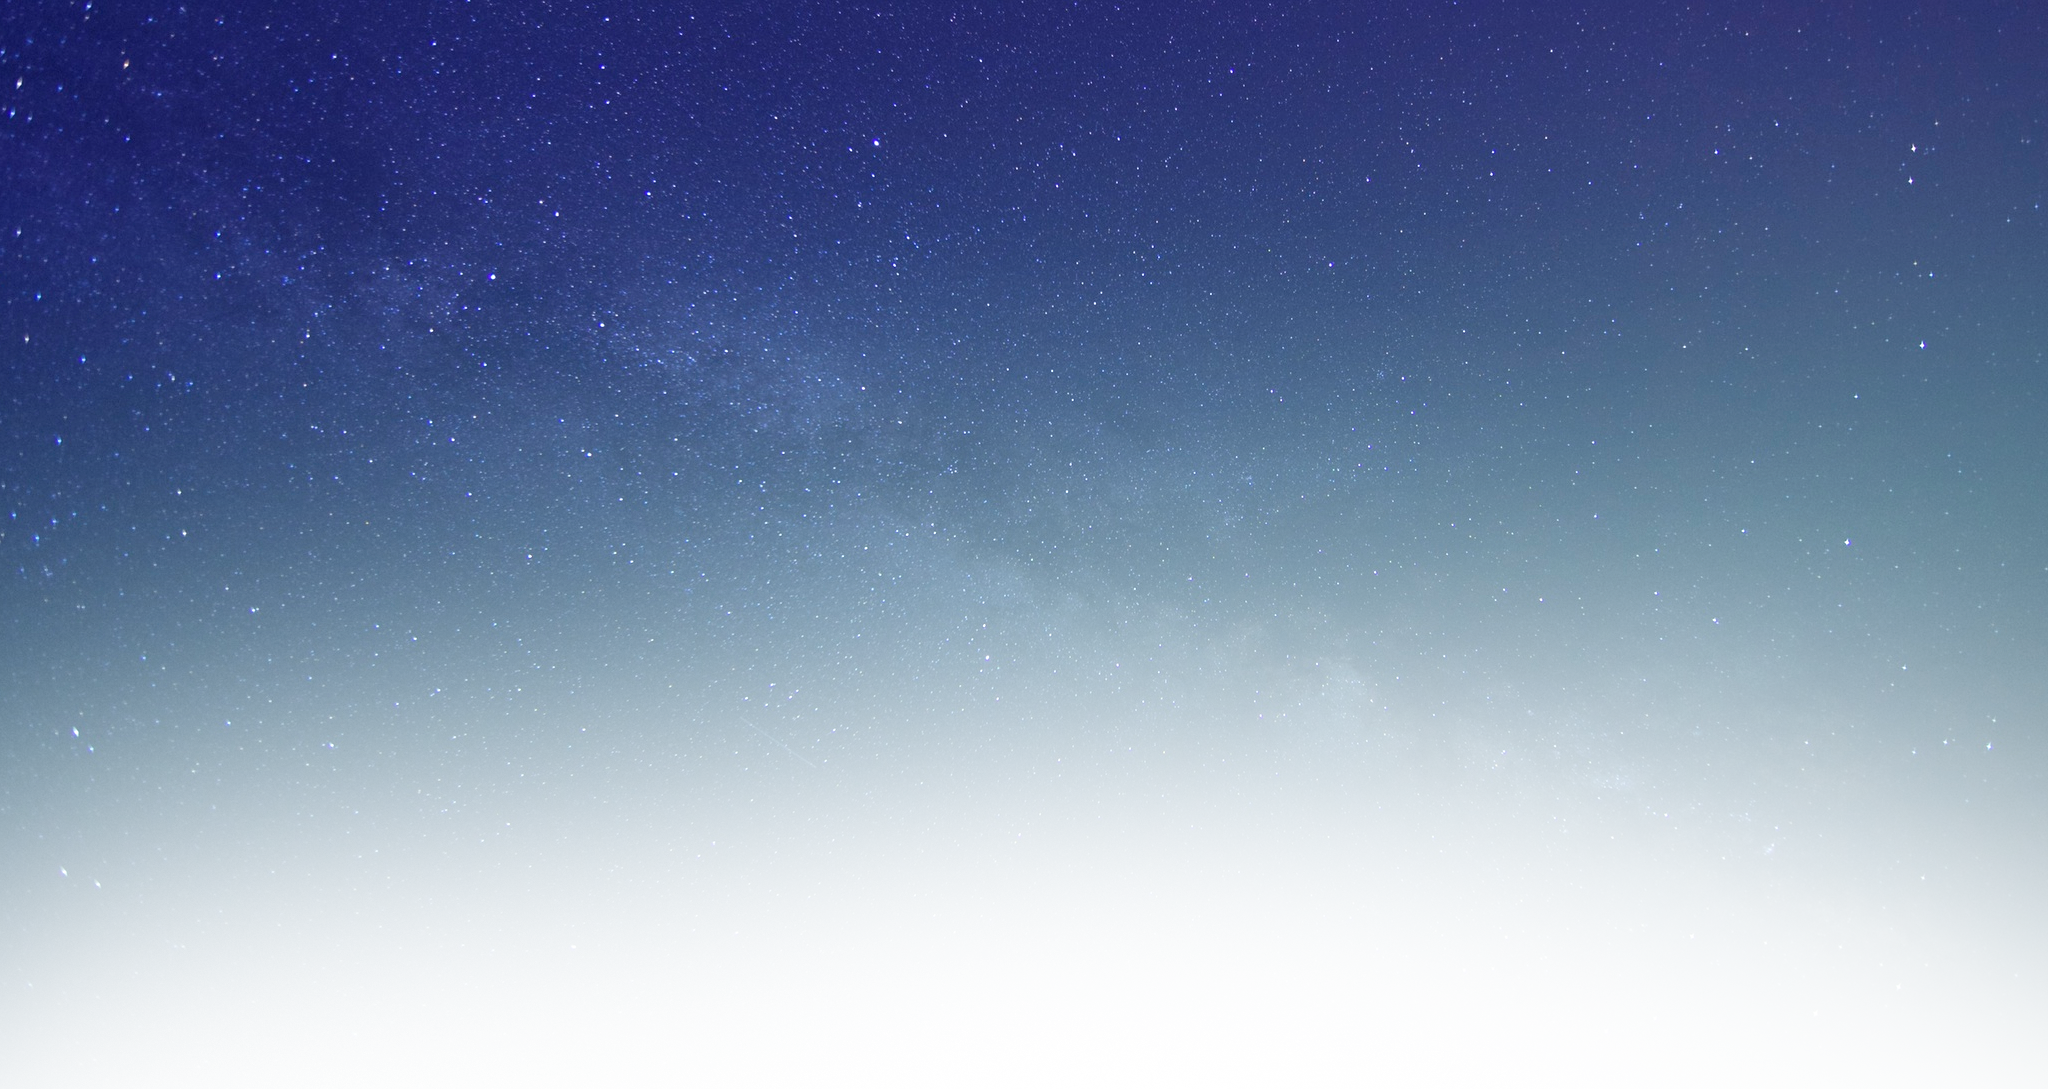 Night Sky Stars Background Psdgraphics - HD 2048×1089